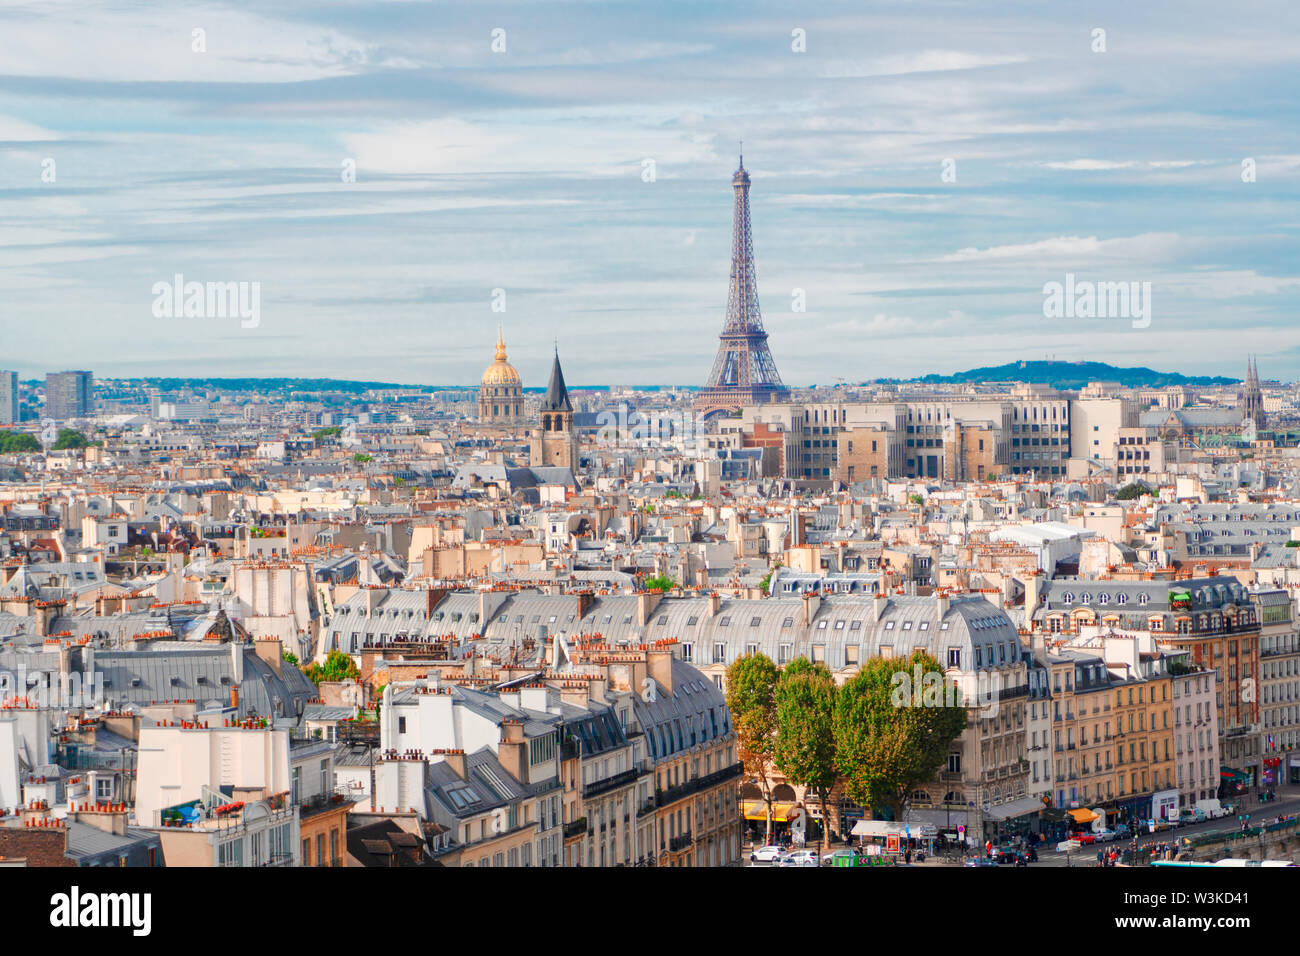 skyline of Paris city with famous eiffel tower from above in soft morning light with cloudscape, France - Stock Image